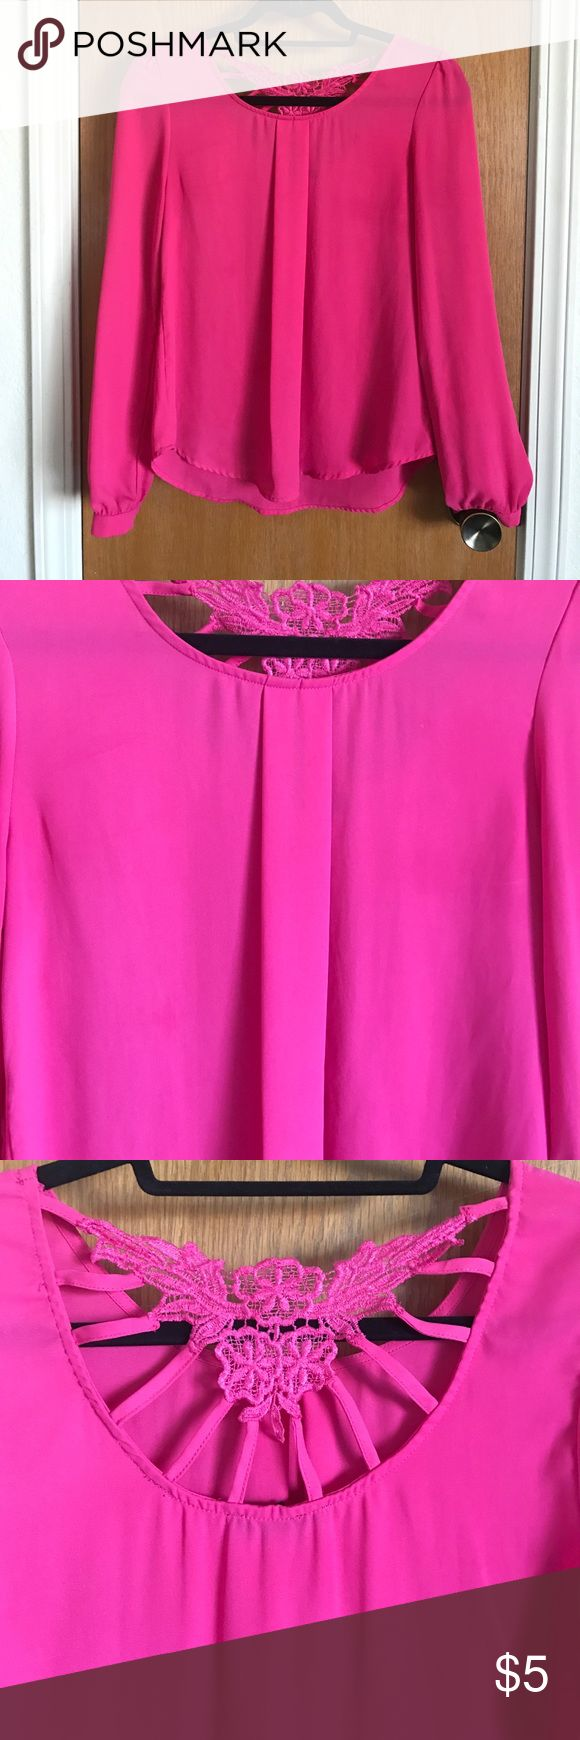 Pink blouse with lace cutout Hot pink blouse with lace cutout on the back. Great for the office or a night out. Long sleeves with pink button. Size small. Pleat in front Tops Blouses